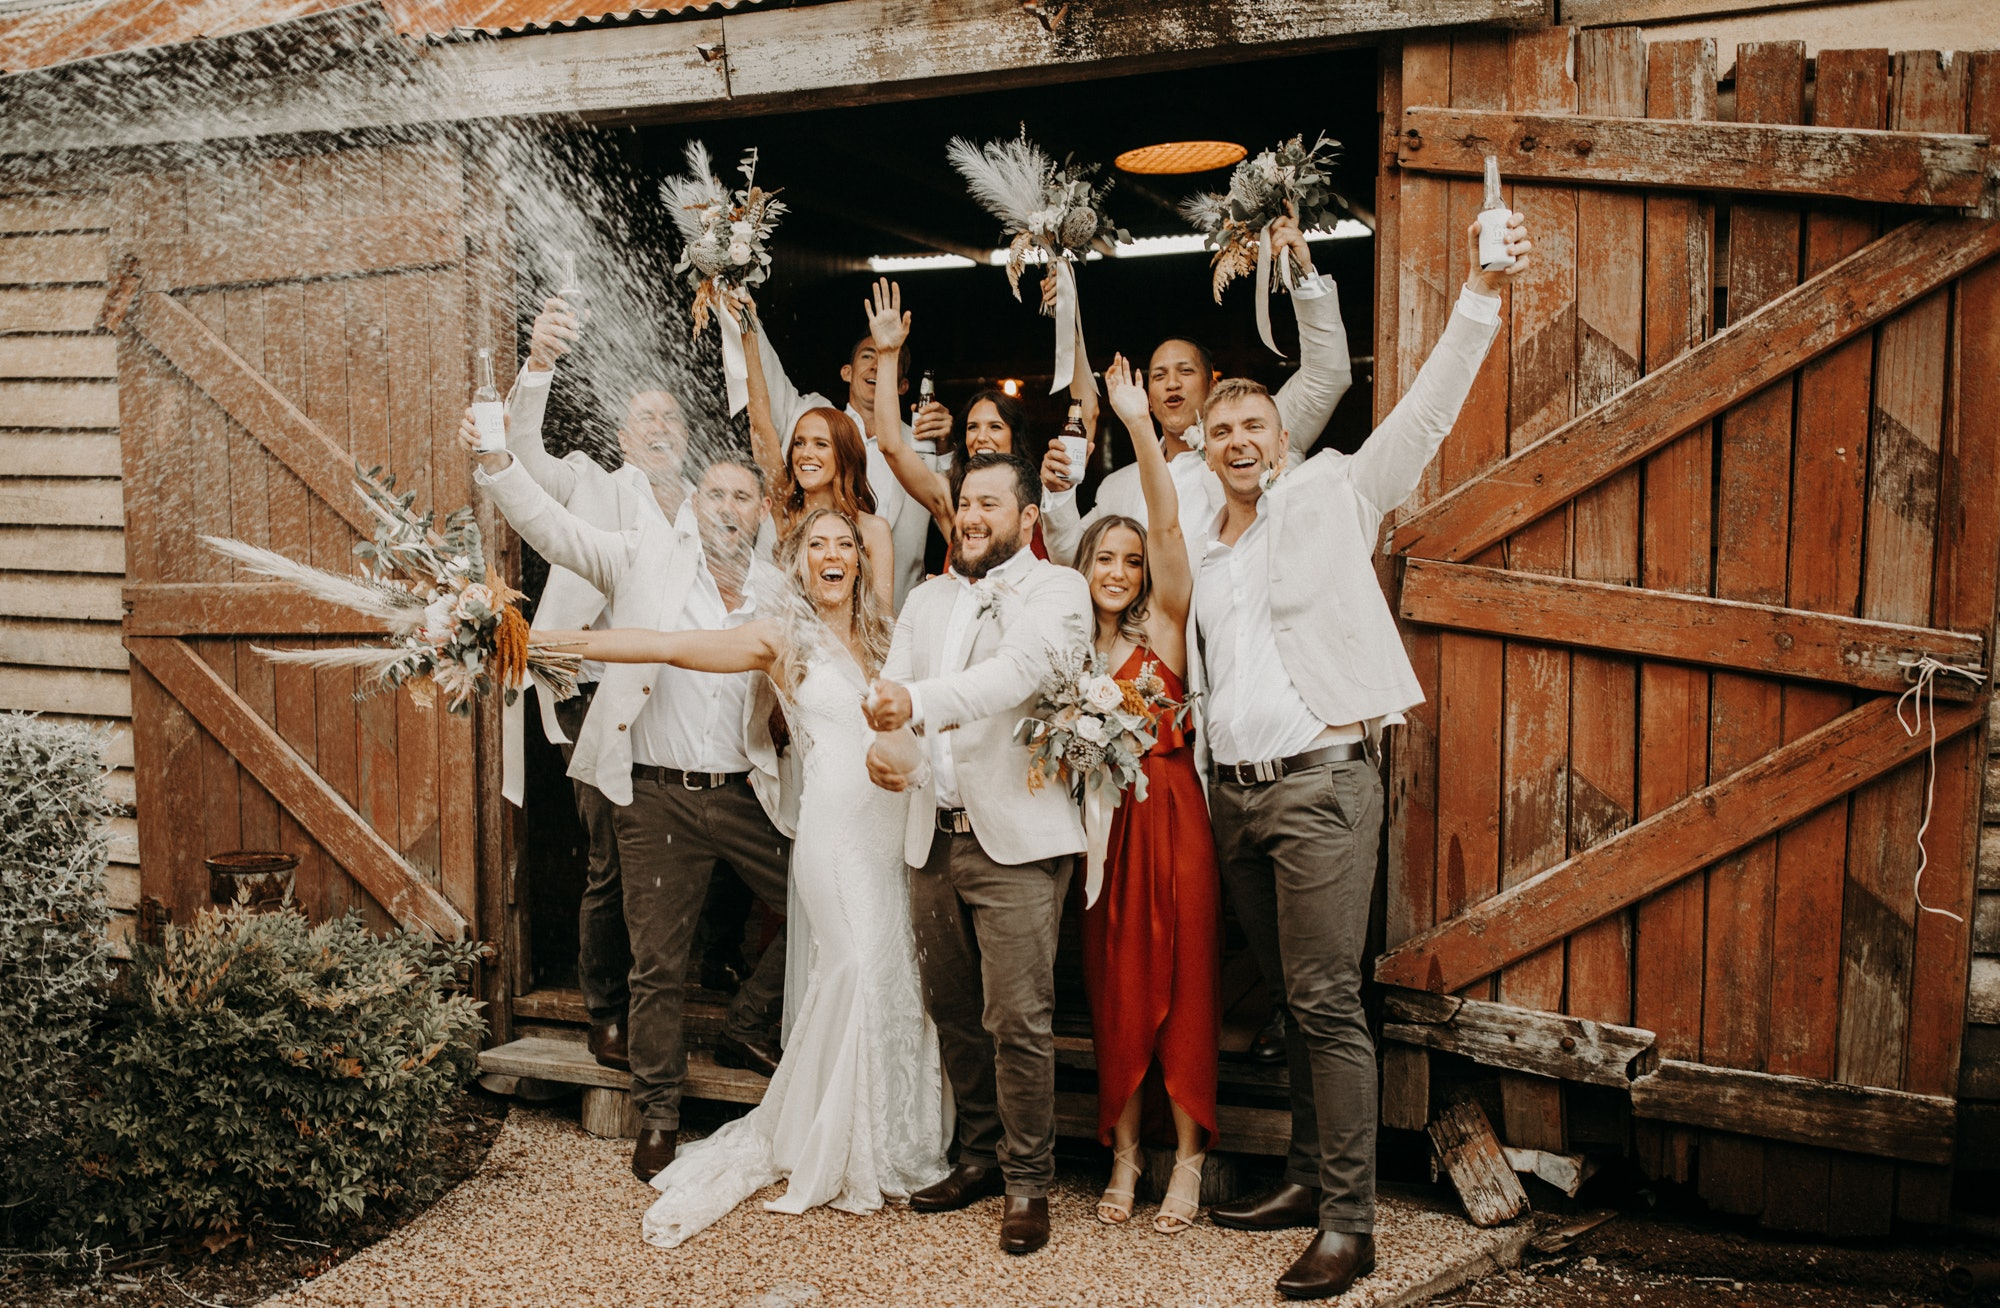 Bride and groom standing with wedding party